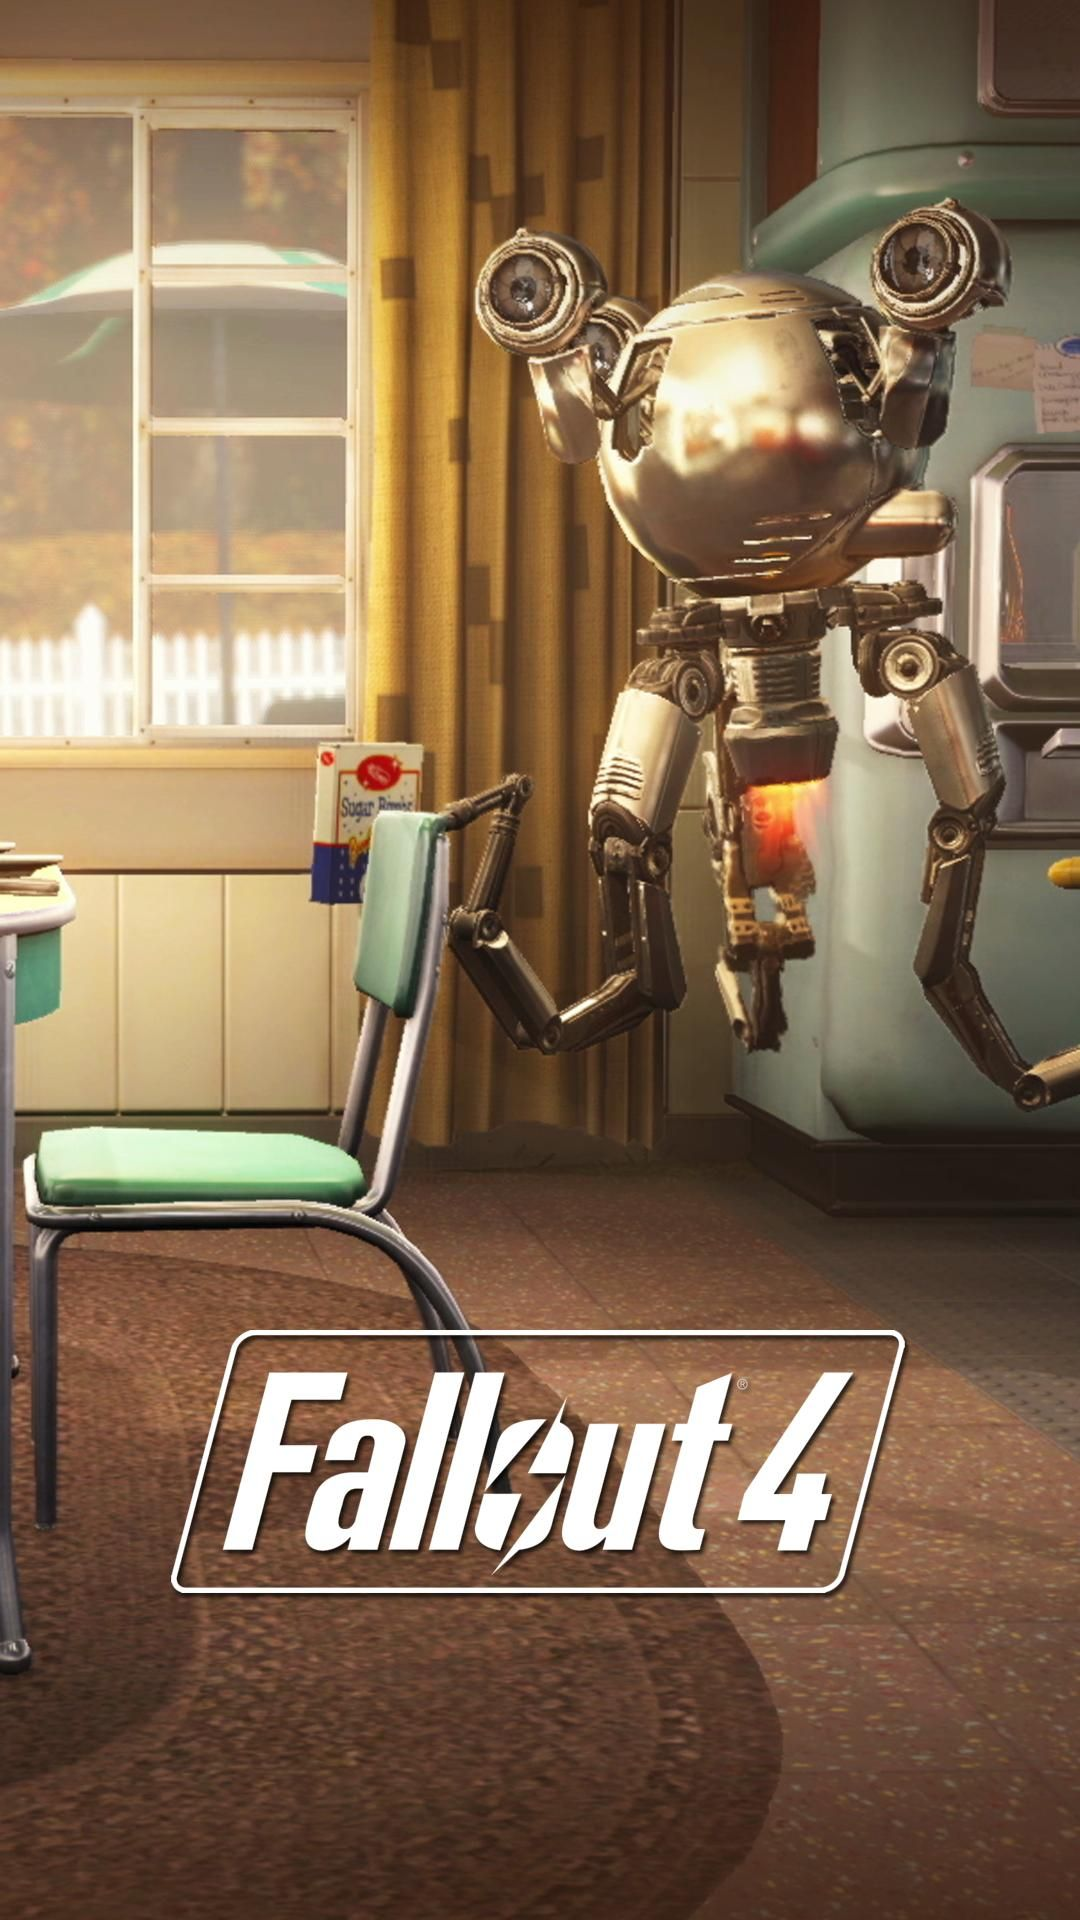 I made some Fallout 4 lock screen wallpapers from E3